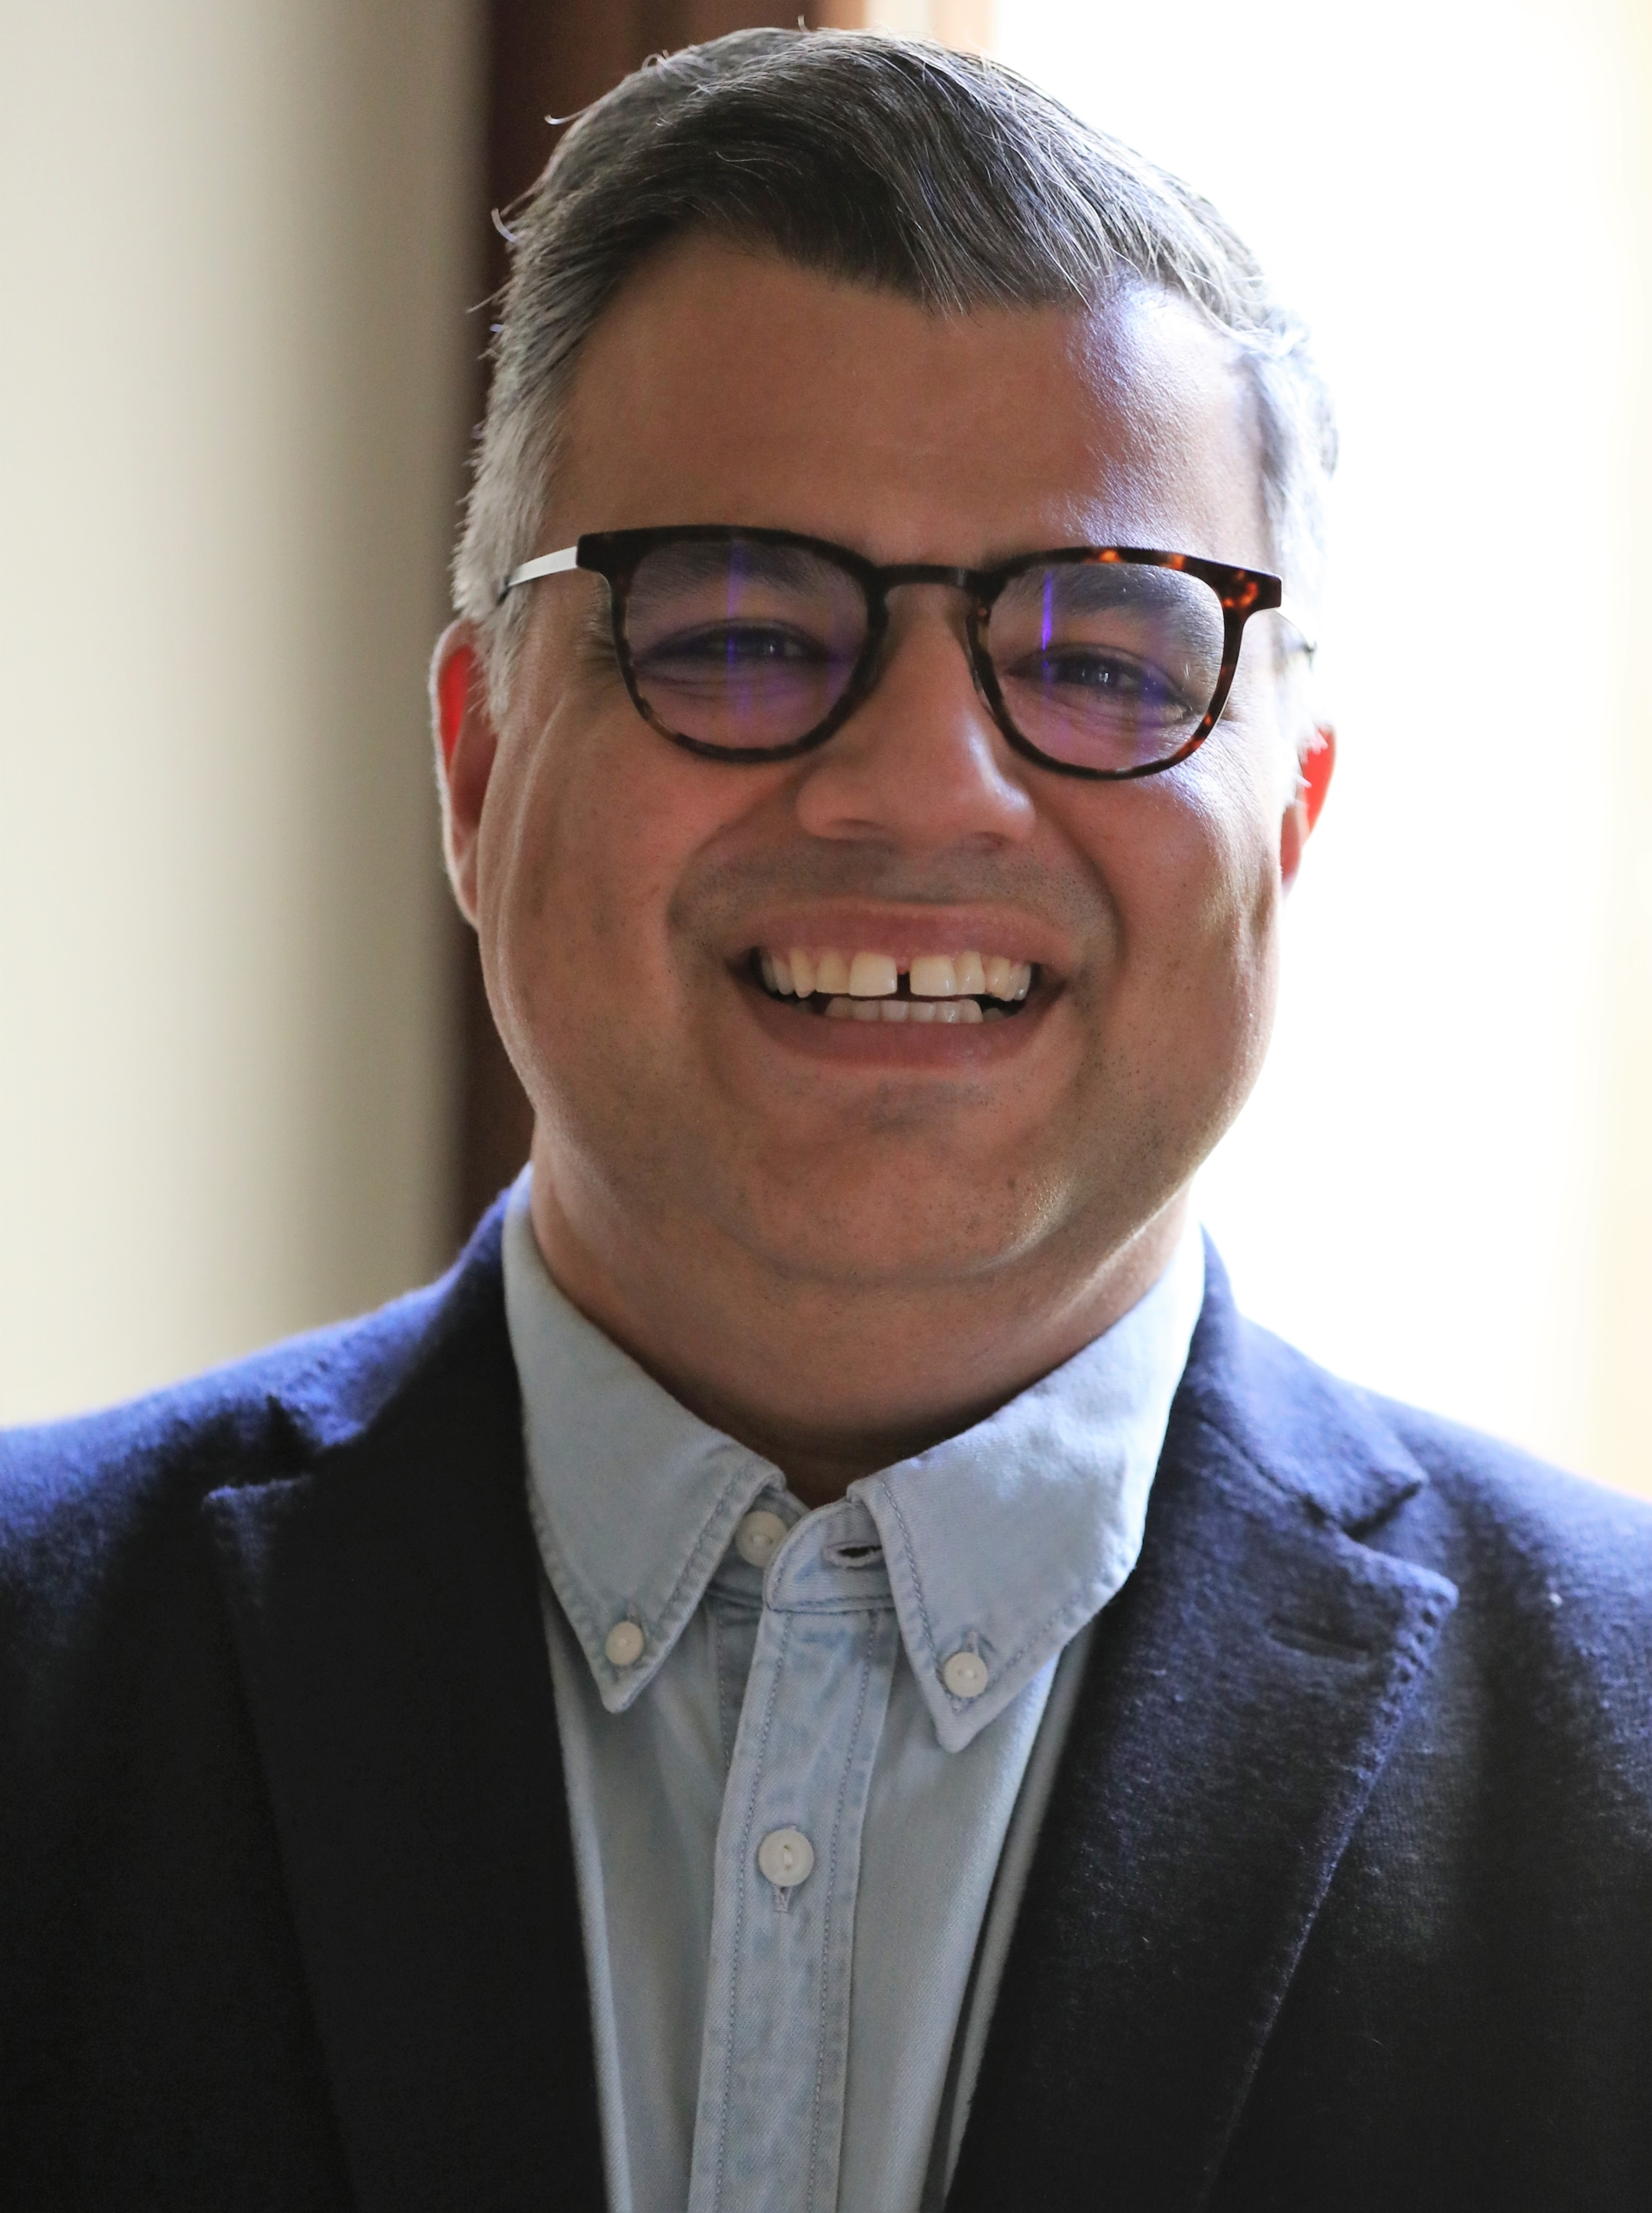 Ali Rezvan, a man wearing glasses and a suit and tie